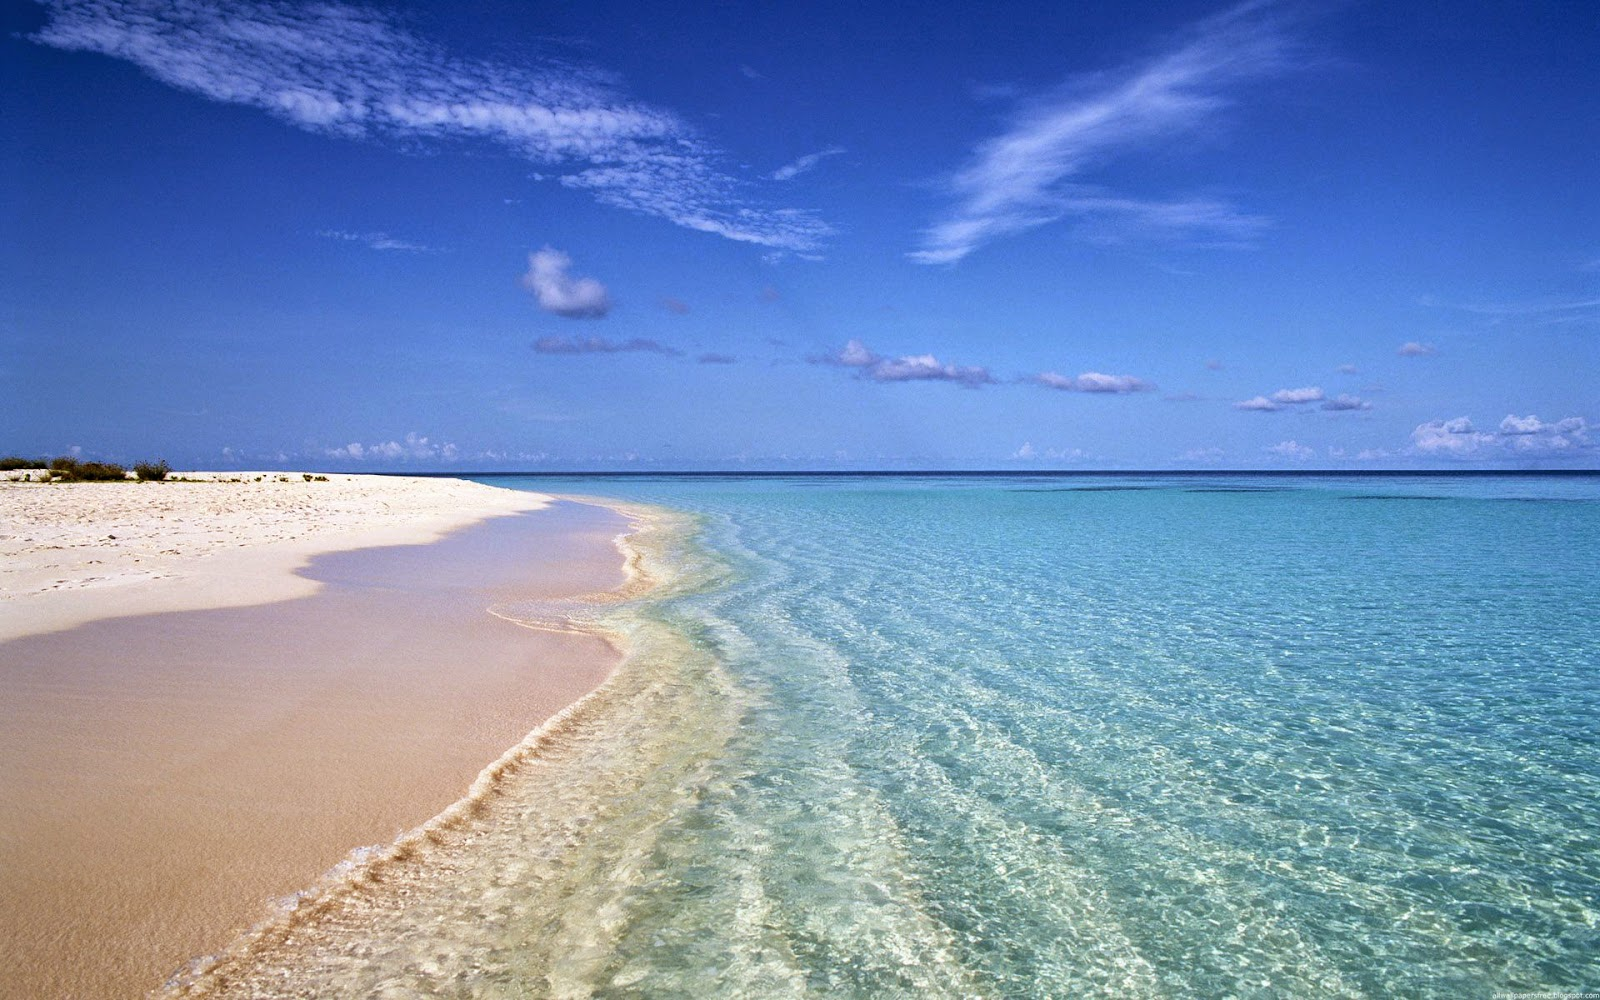 World Most Beautiful Grace Bay Turks Beach Images for Desktop Backgrounds